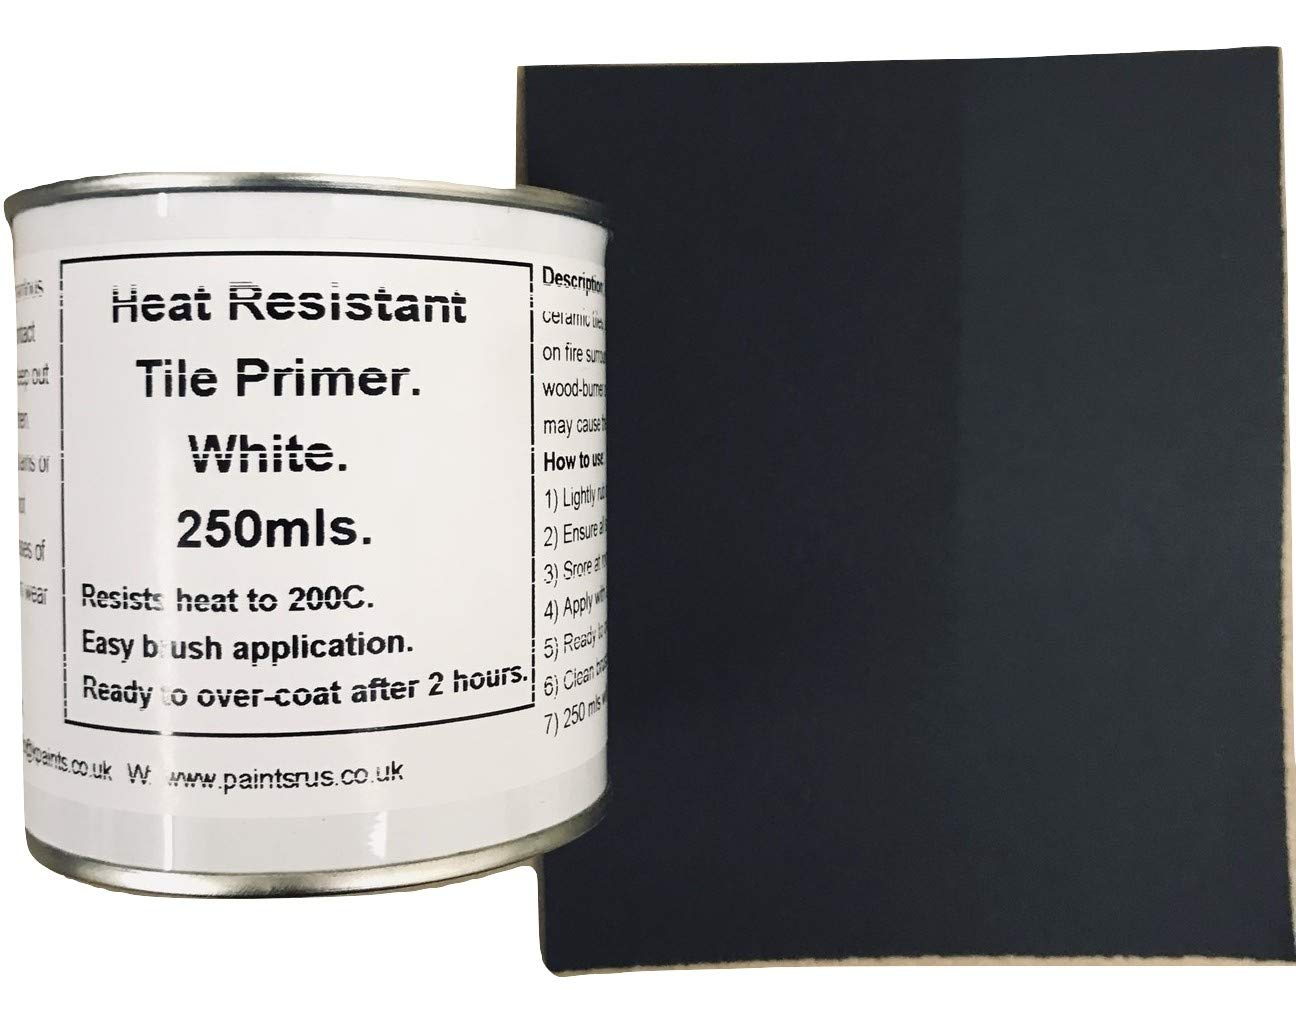 1 x 250ml Heat Resistant Primer + Wet & Dry. For Fireplace Surrounds, Tiles, Granite, Plastic Coated MDF Fascinating Finishes Ltd